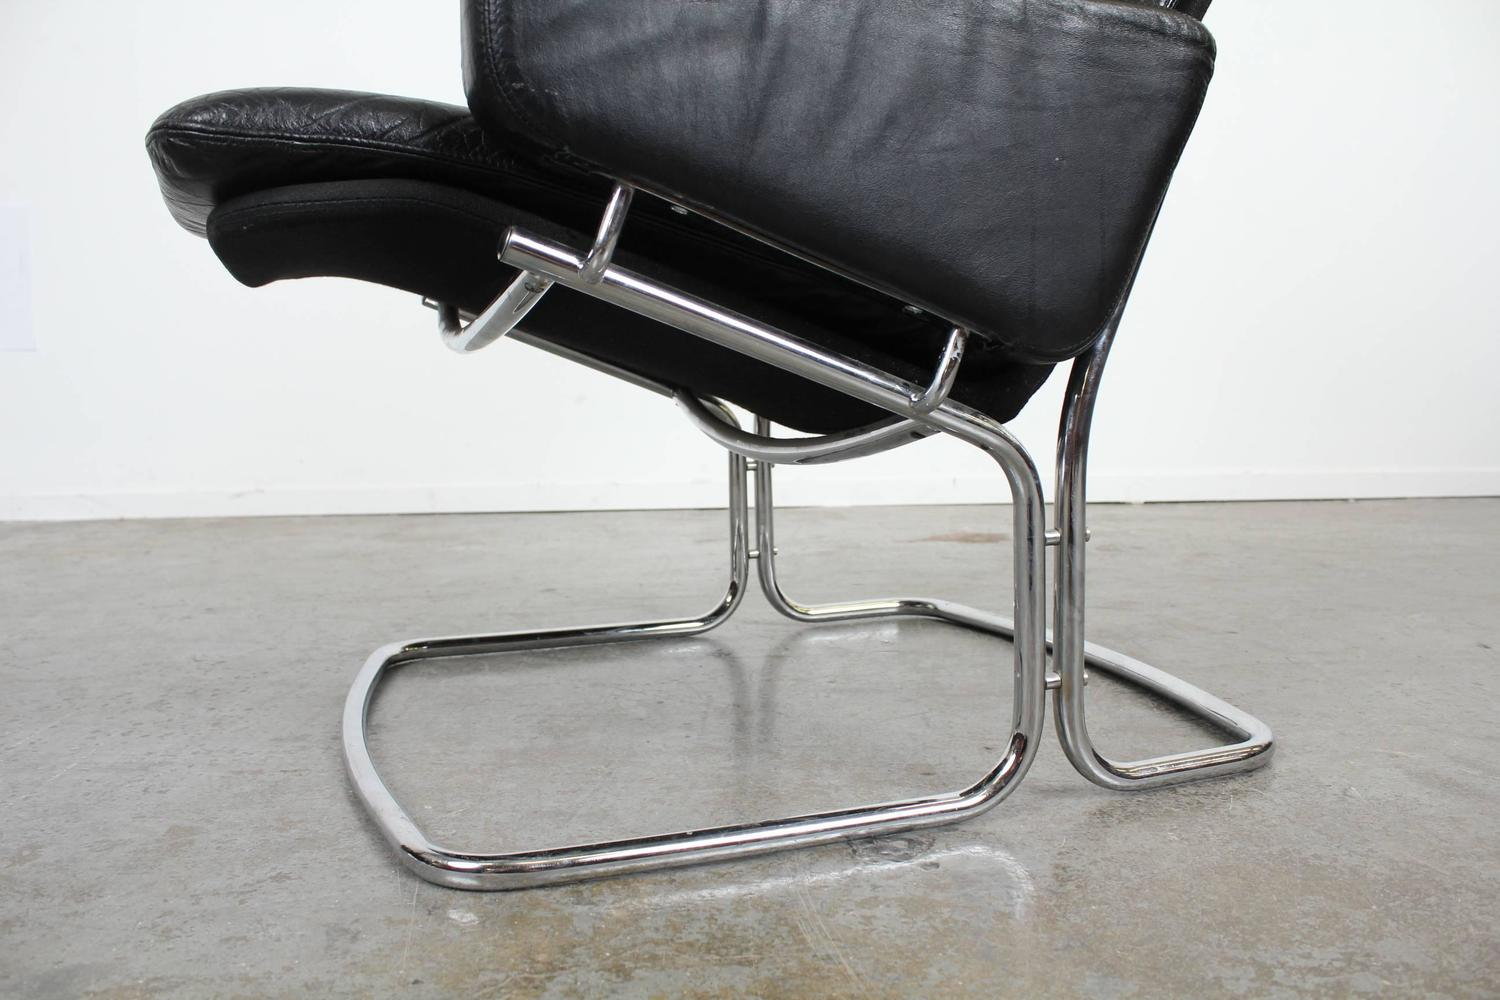 Pair Of Mid Century Modern Black Leather And Chrome Chairs At 1stdibs